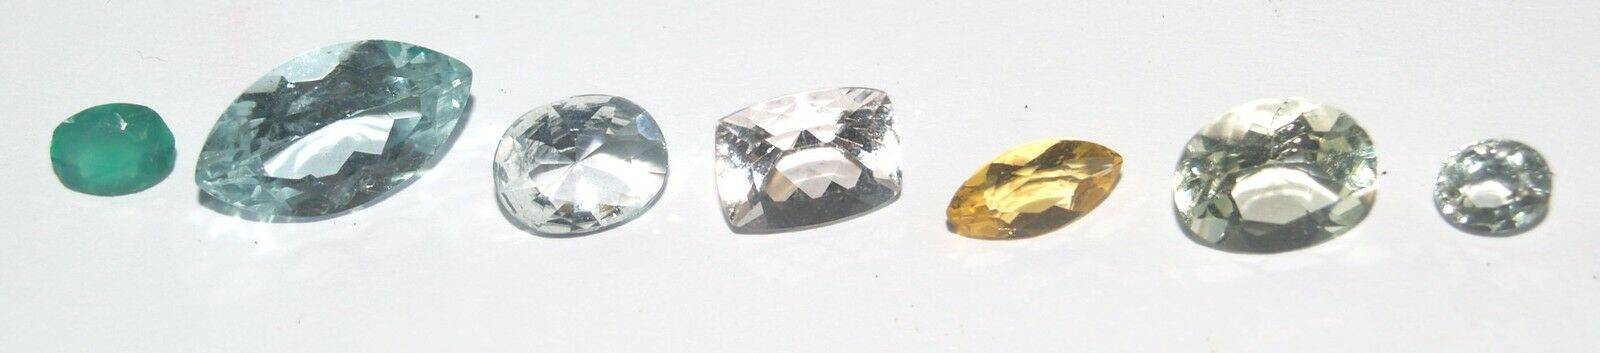 Gemstones Of All Types